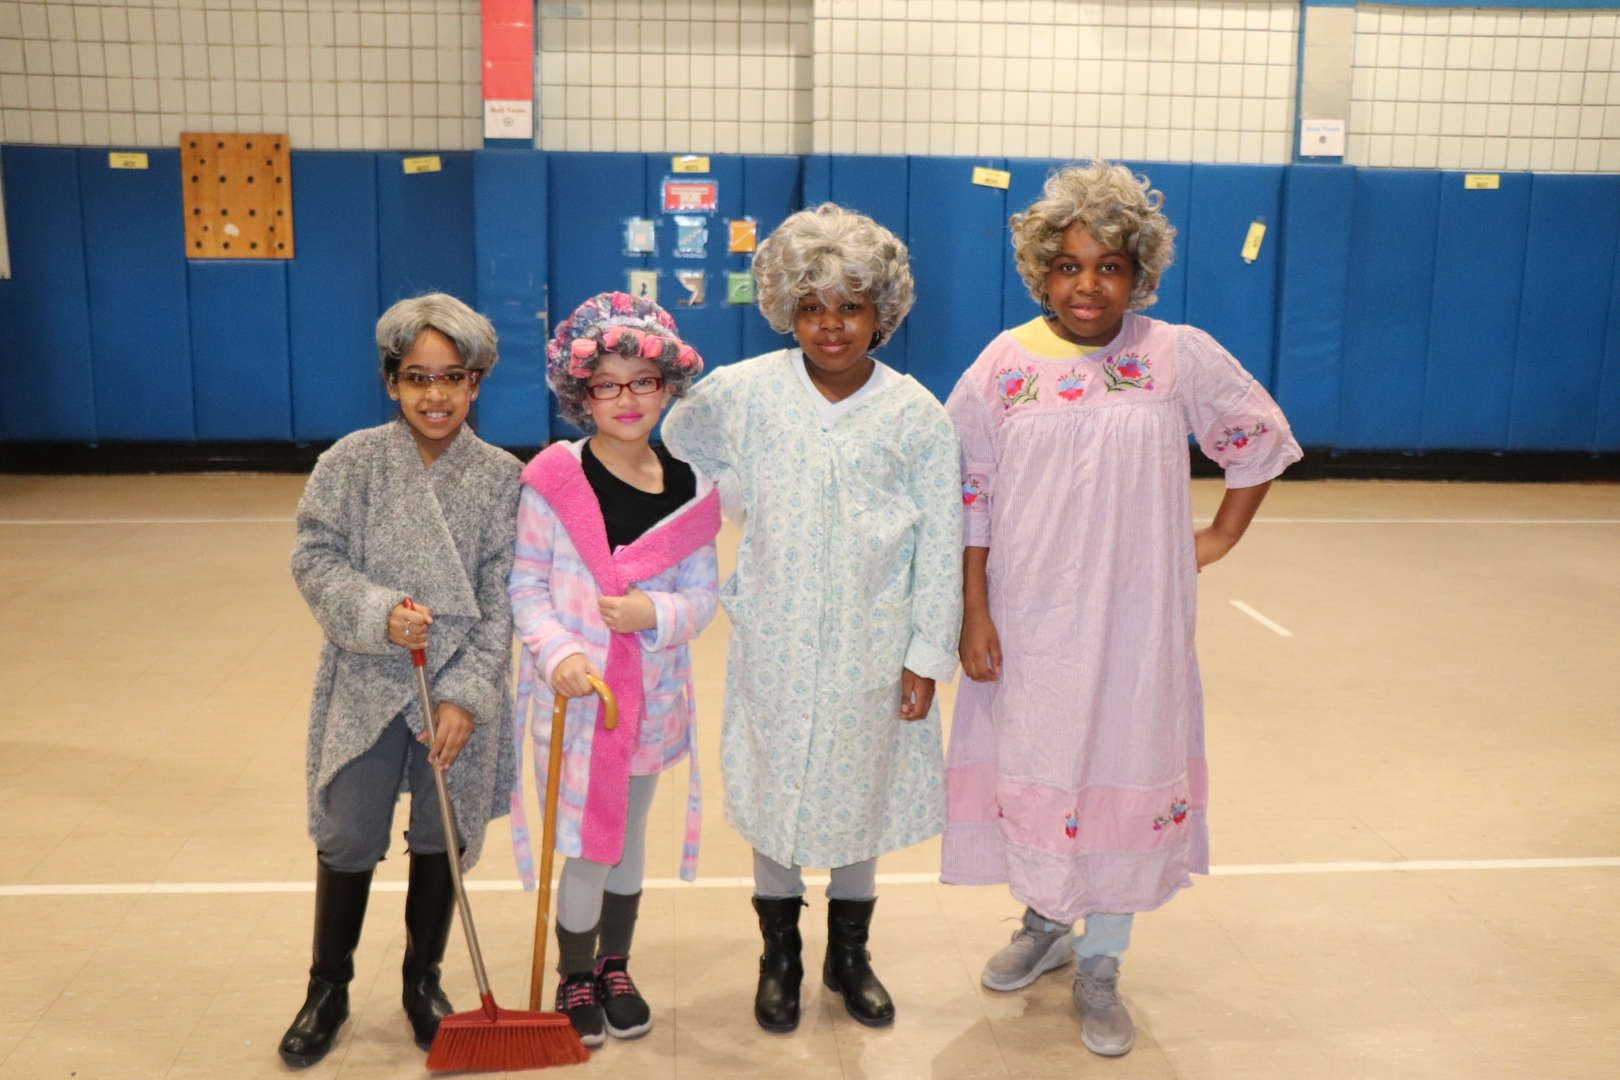 Some more students dressed up like they are 100 years old.